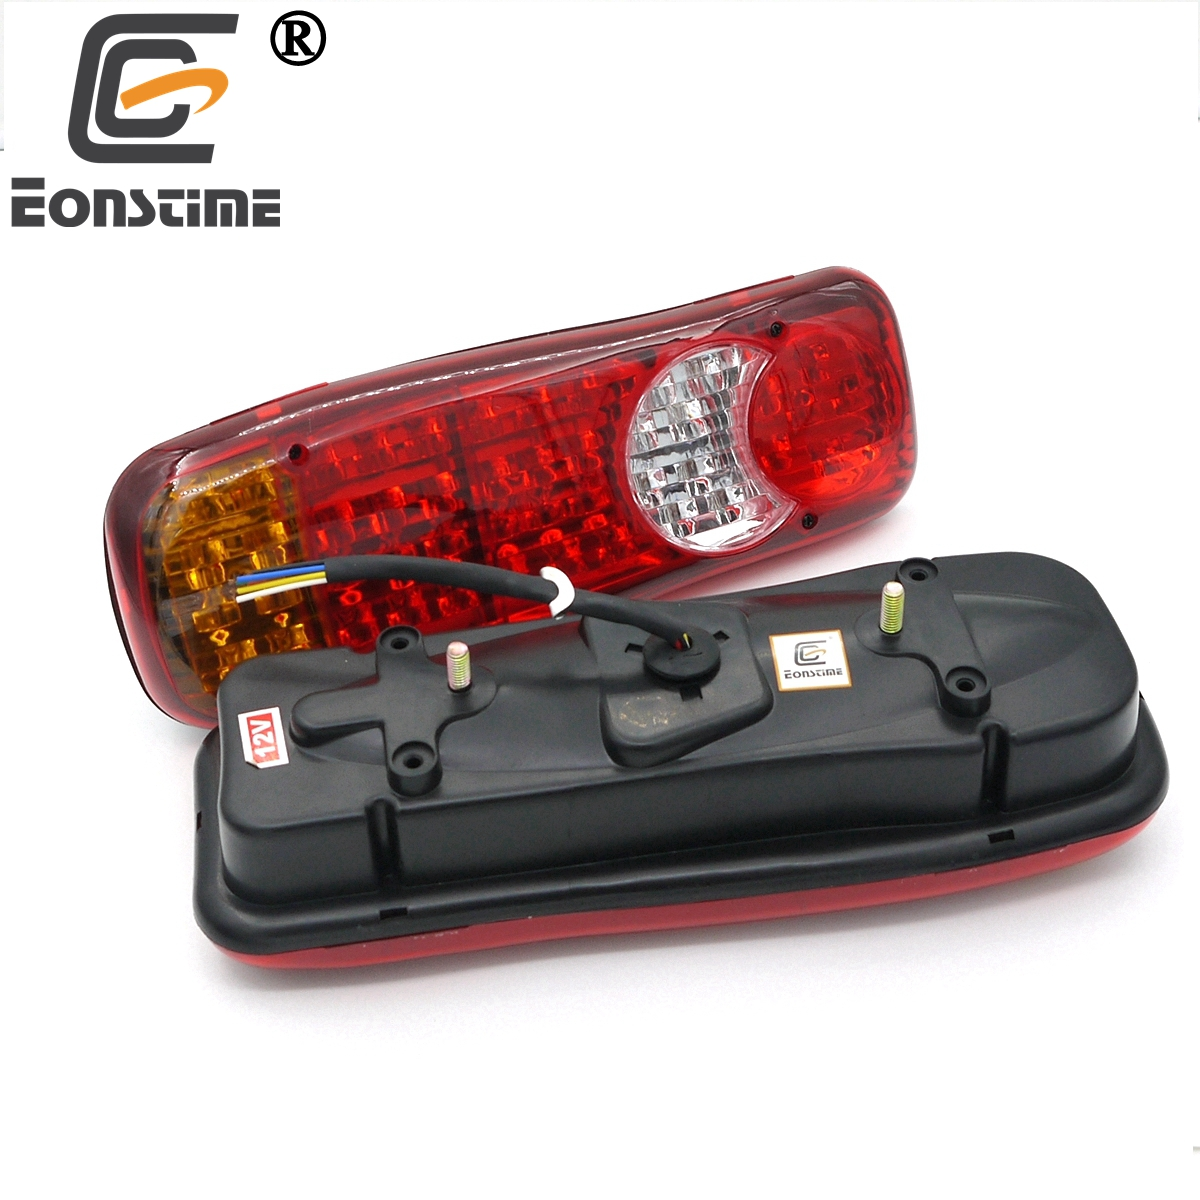 Eonstime 2pcs 12V/24V Automobiles Vehicle Trailer Car Truck LED Stop Rear Tail Indicator Fog Lights Reverse Van Auto LED Lamps 1 pair 12v 24v led stop rear turn signal lorry stop rear tail indicator reverse lamps lights trailer truck